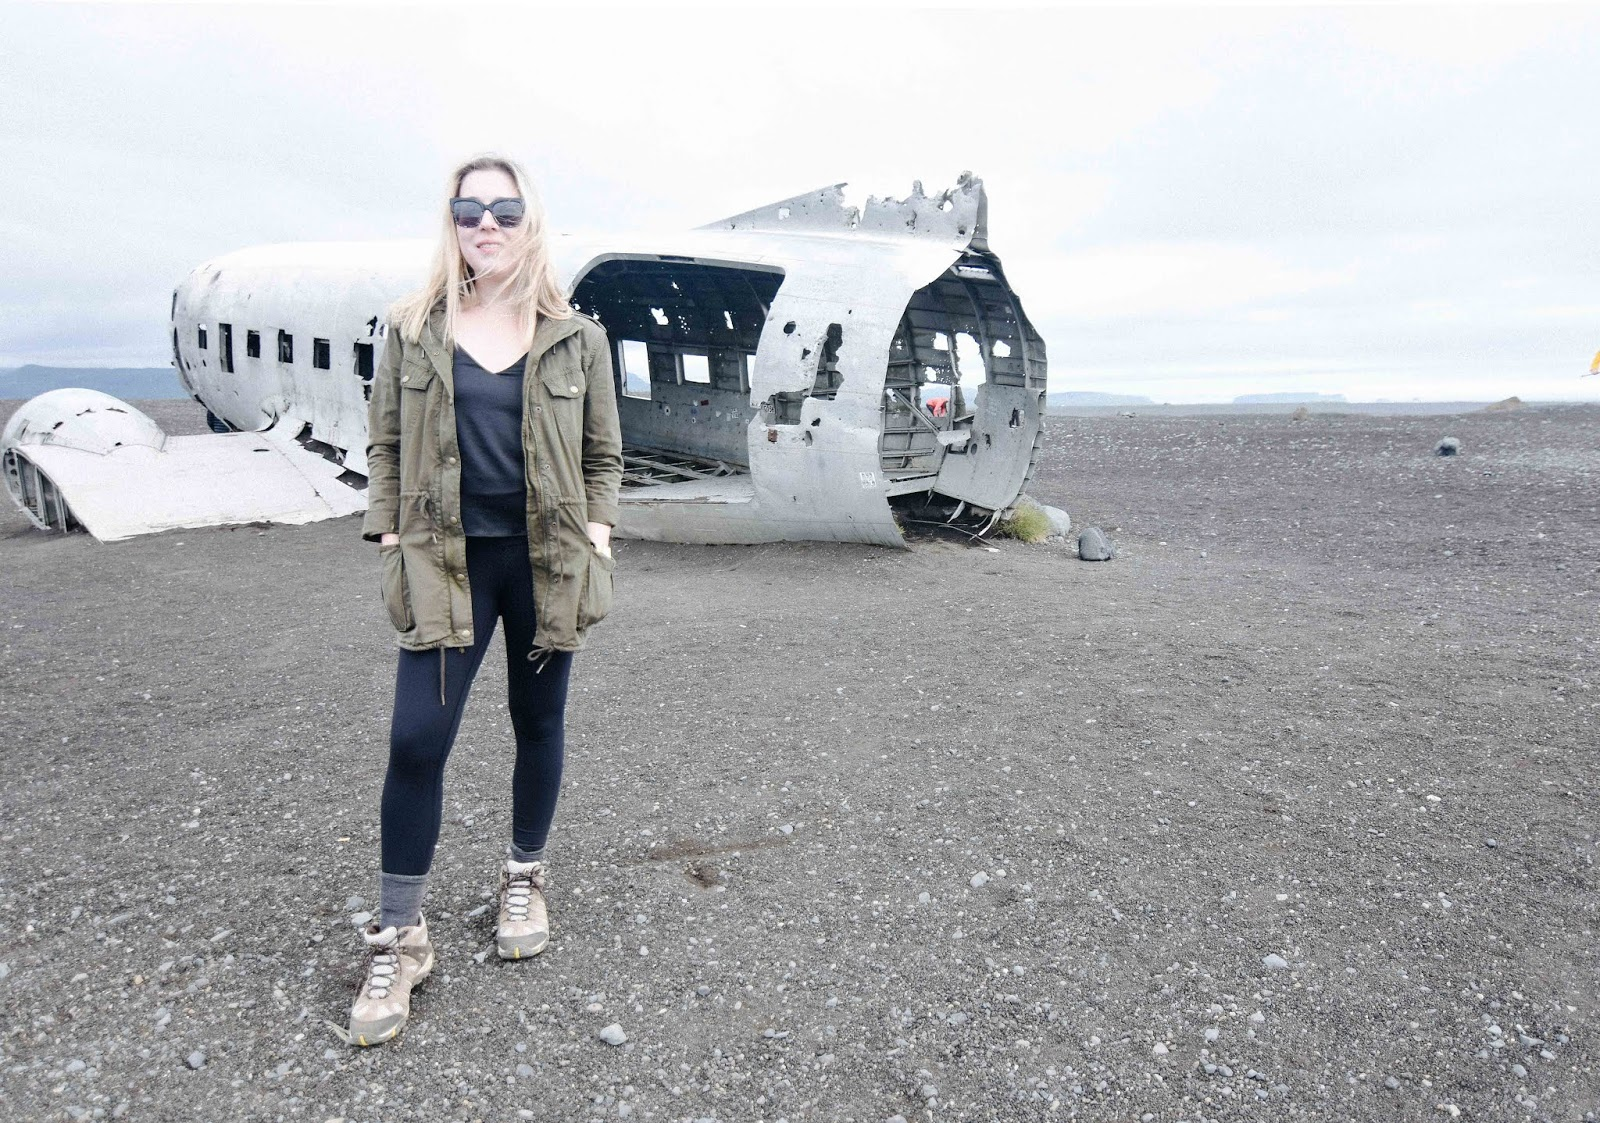 DC3 plane wreck in Sólheimasandur iceland travel blog